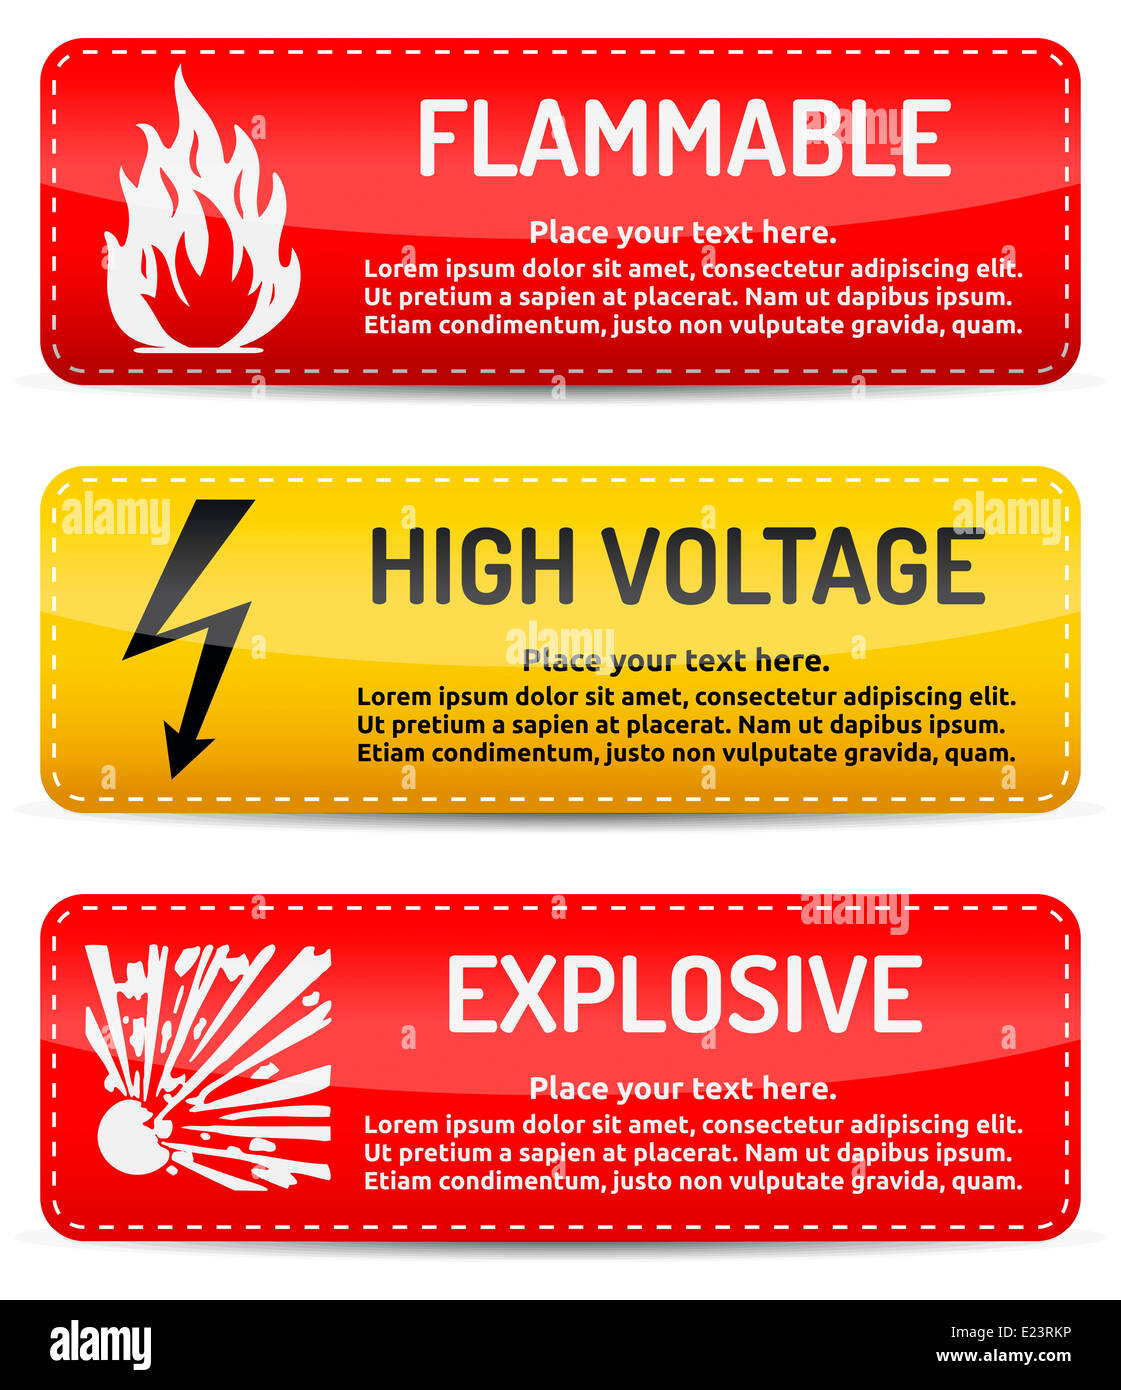 Flammable, High voltage, Explosive danger warning sign template with shadow on white background for your text. - Stock Image